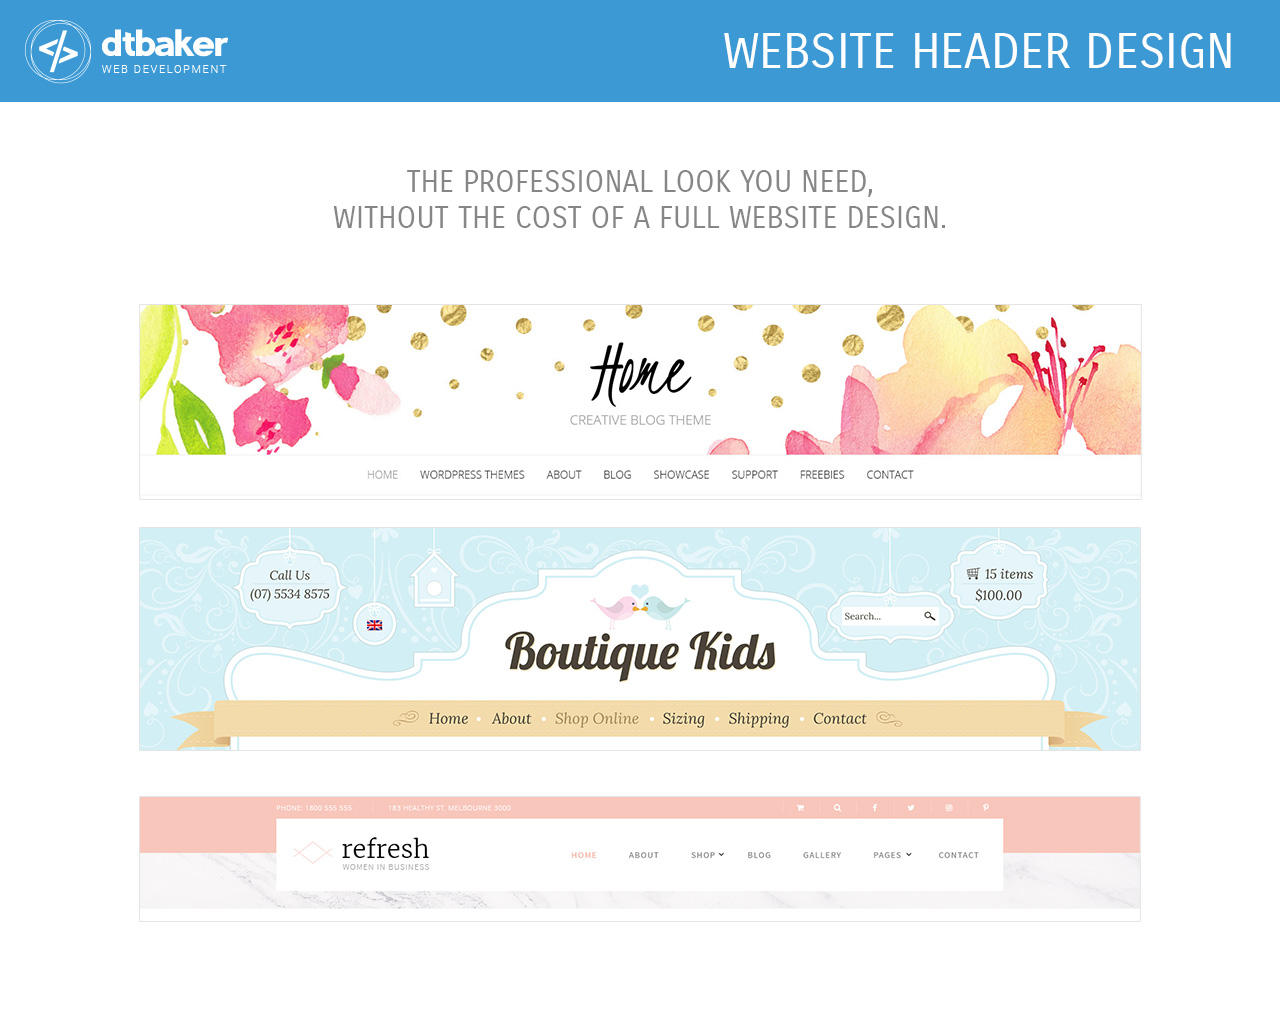 Website Header Graphic Design by dtbaker - 106154